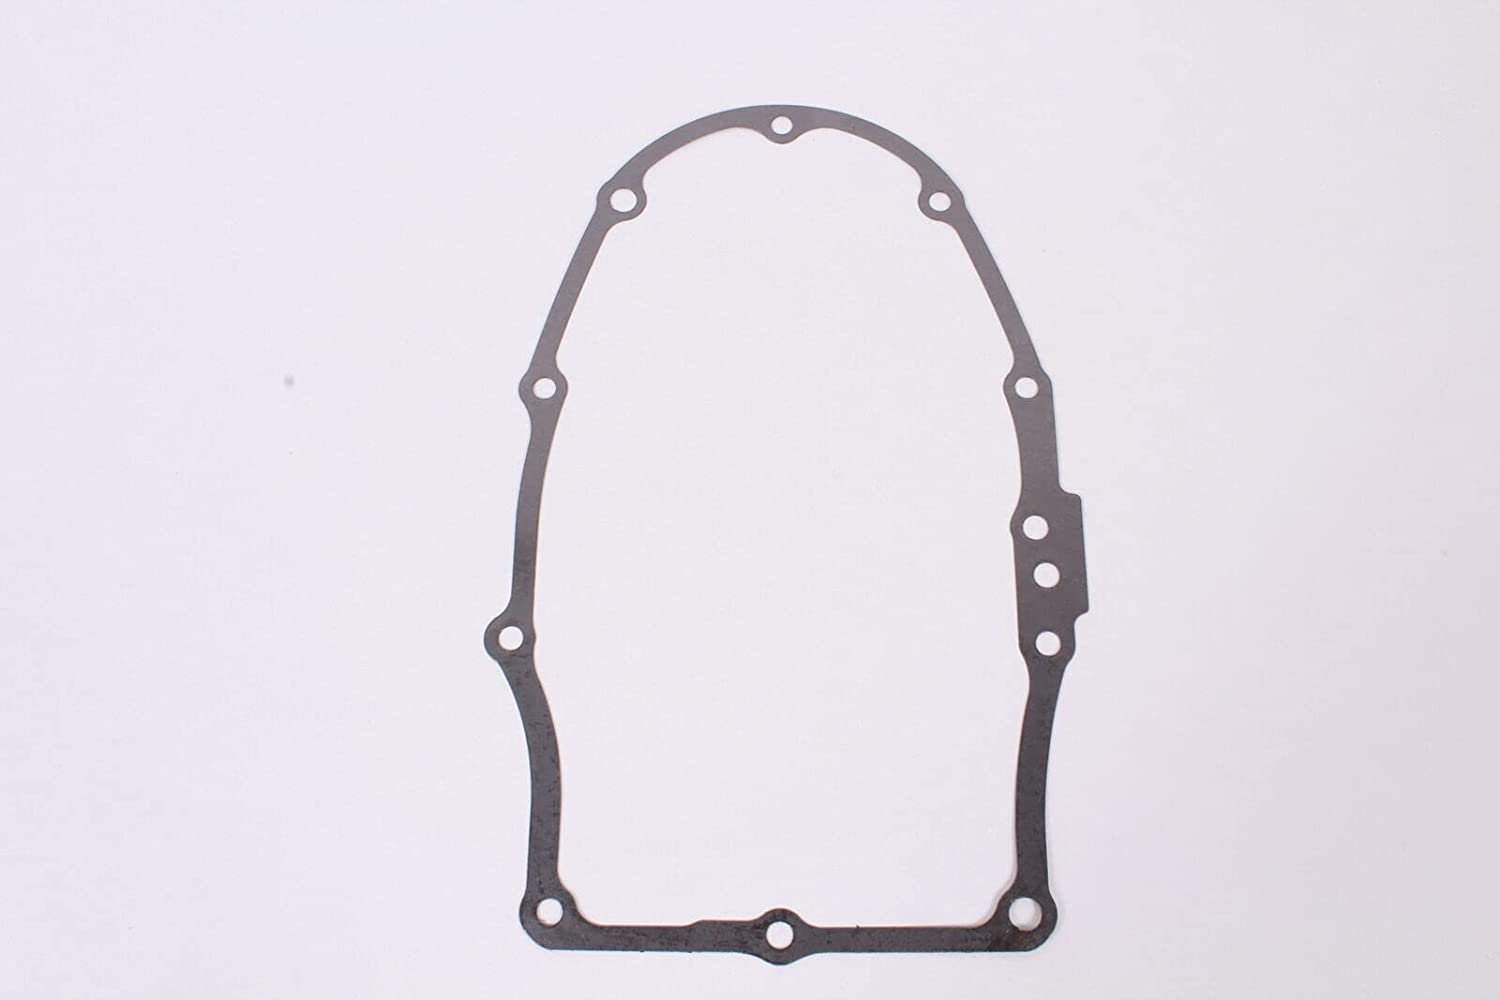 Genuine i Ranking TOP16 11061-7047 Year-end annual account Crankcase Gasket FH601D FH721D Fits FH680D